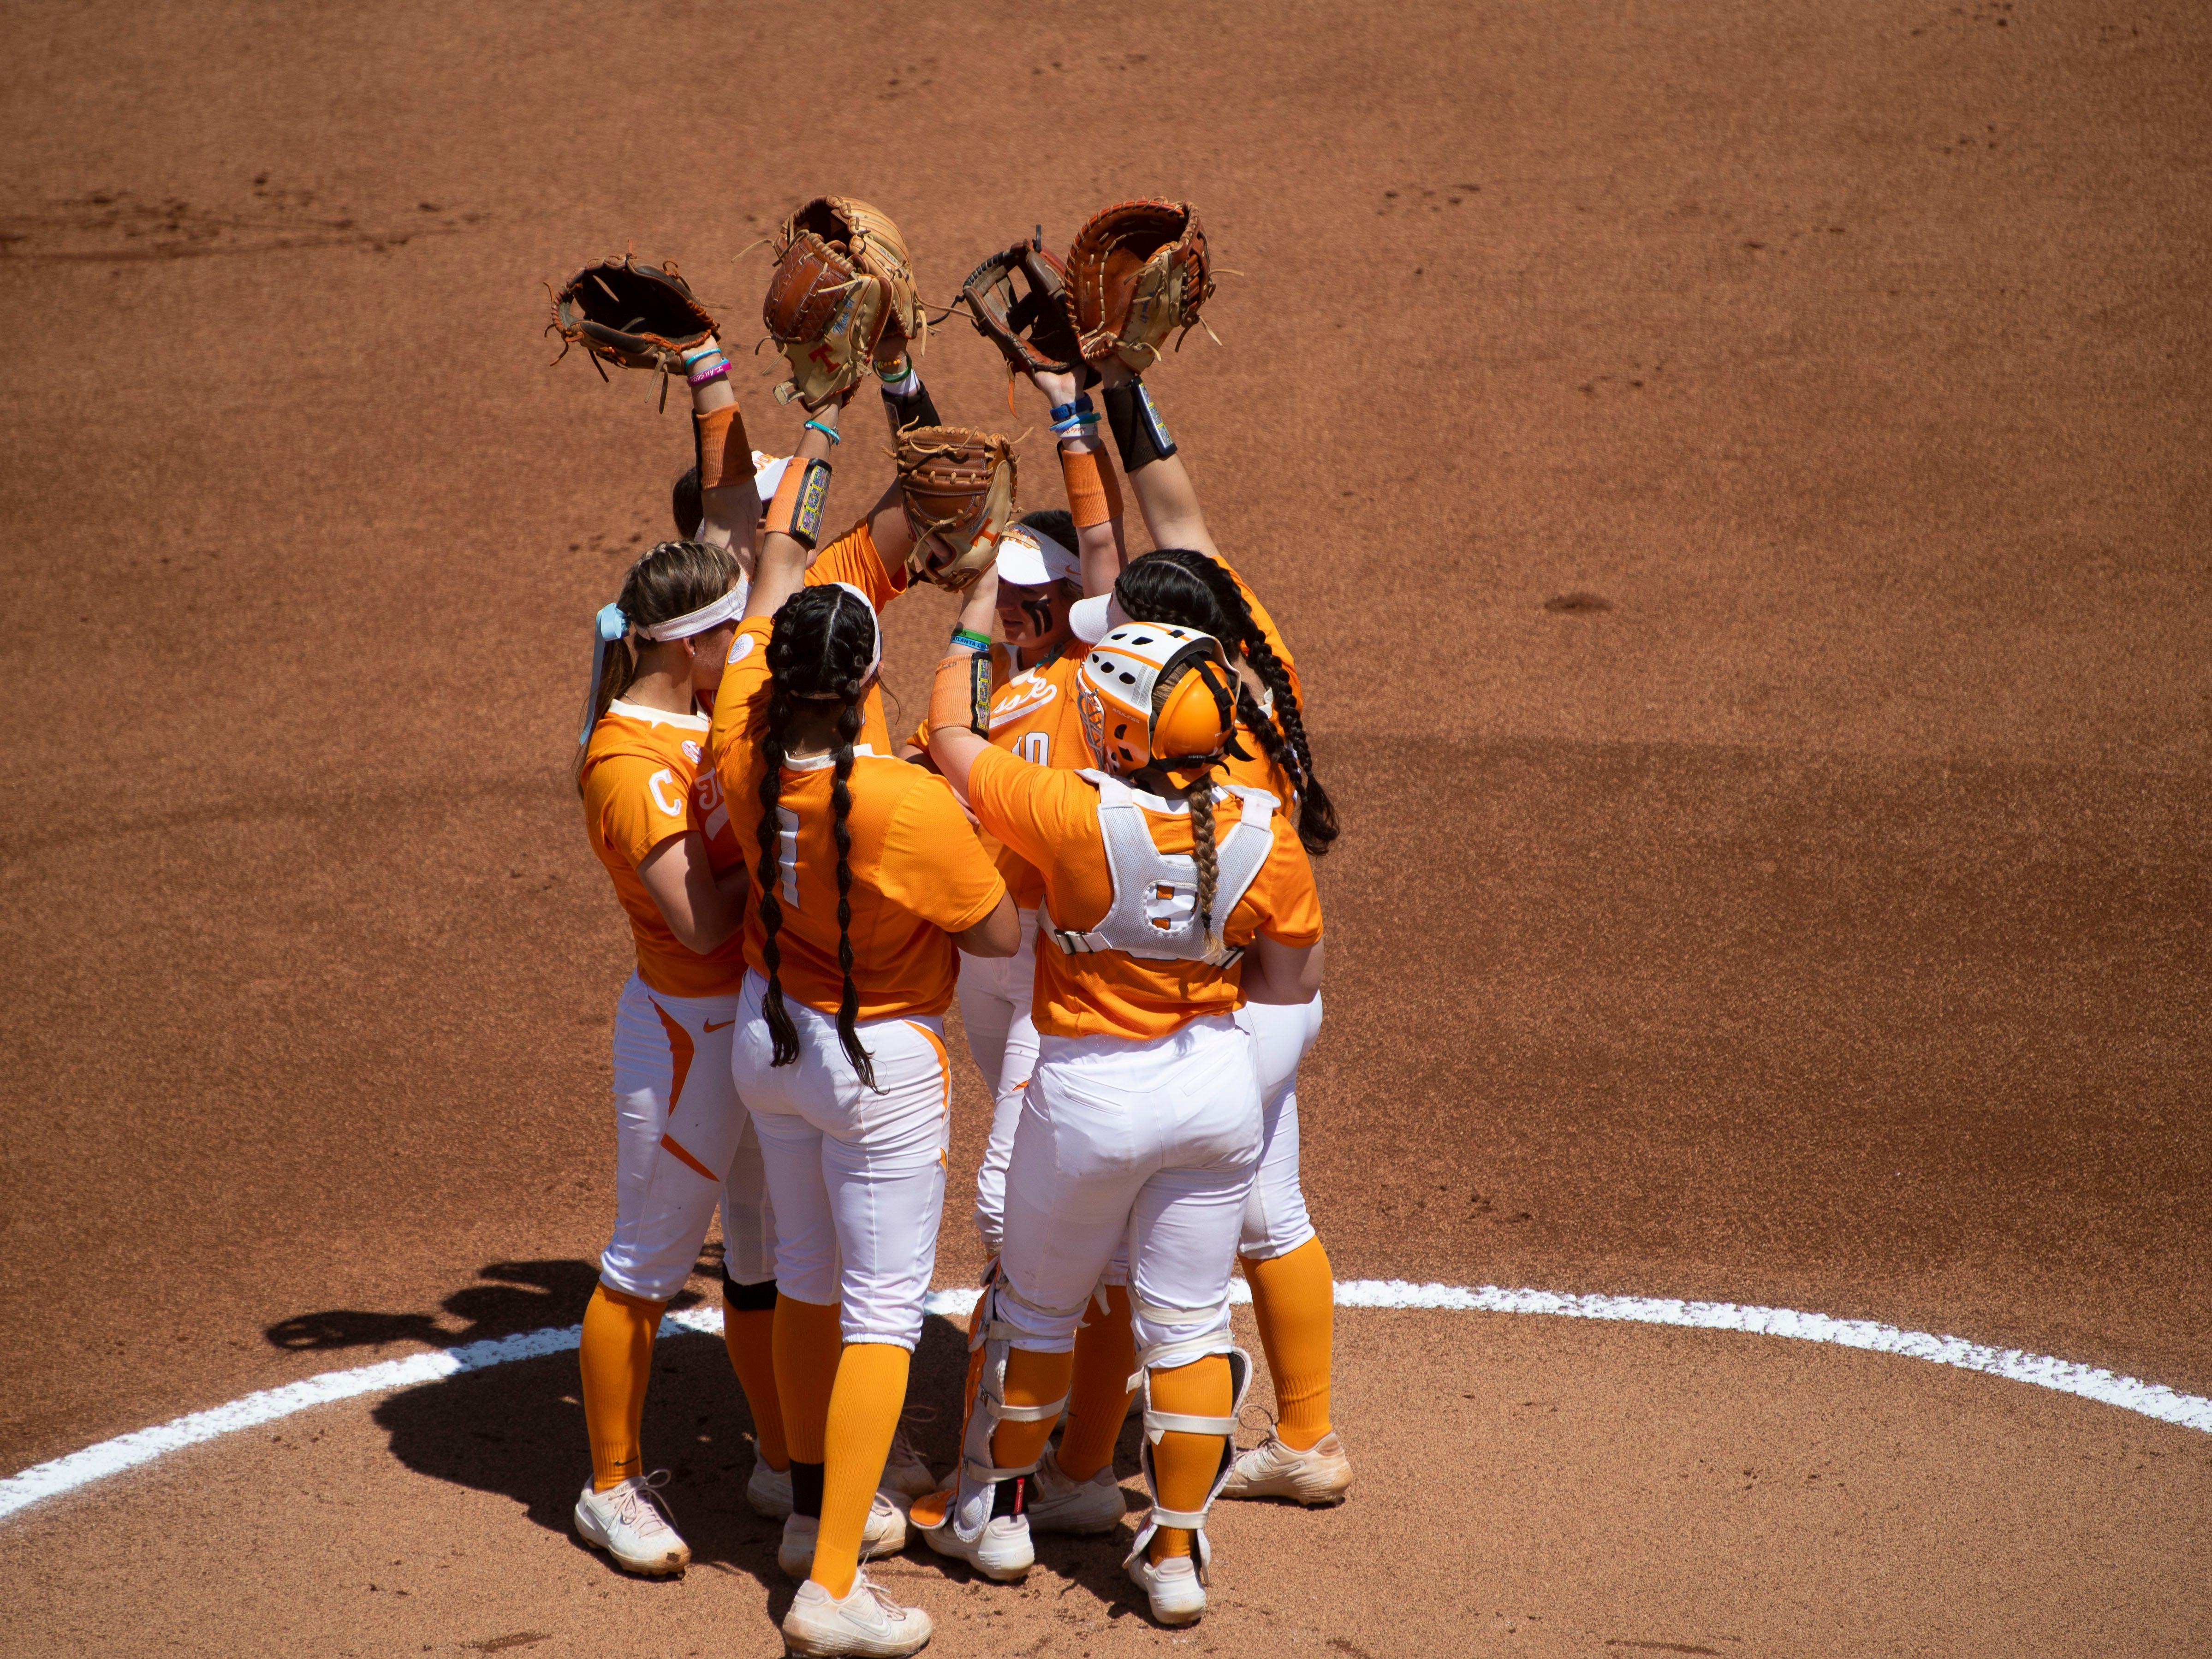 The Tennessee infield gather before the start of their game against Mississippi State at Sherri Parker Lee Stadium on Sunday, April 14, 2019.